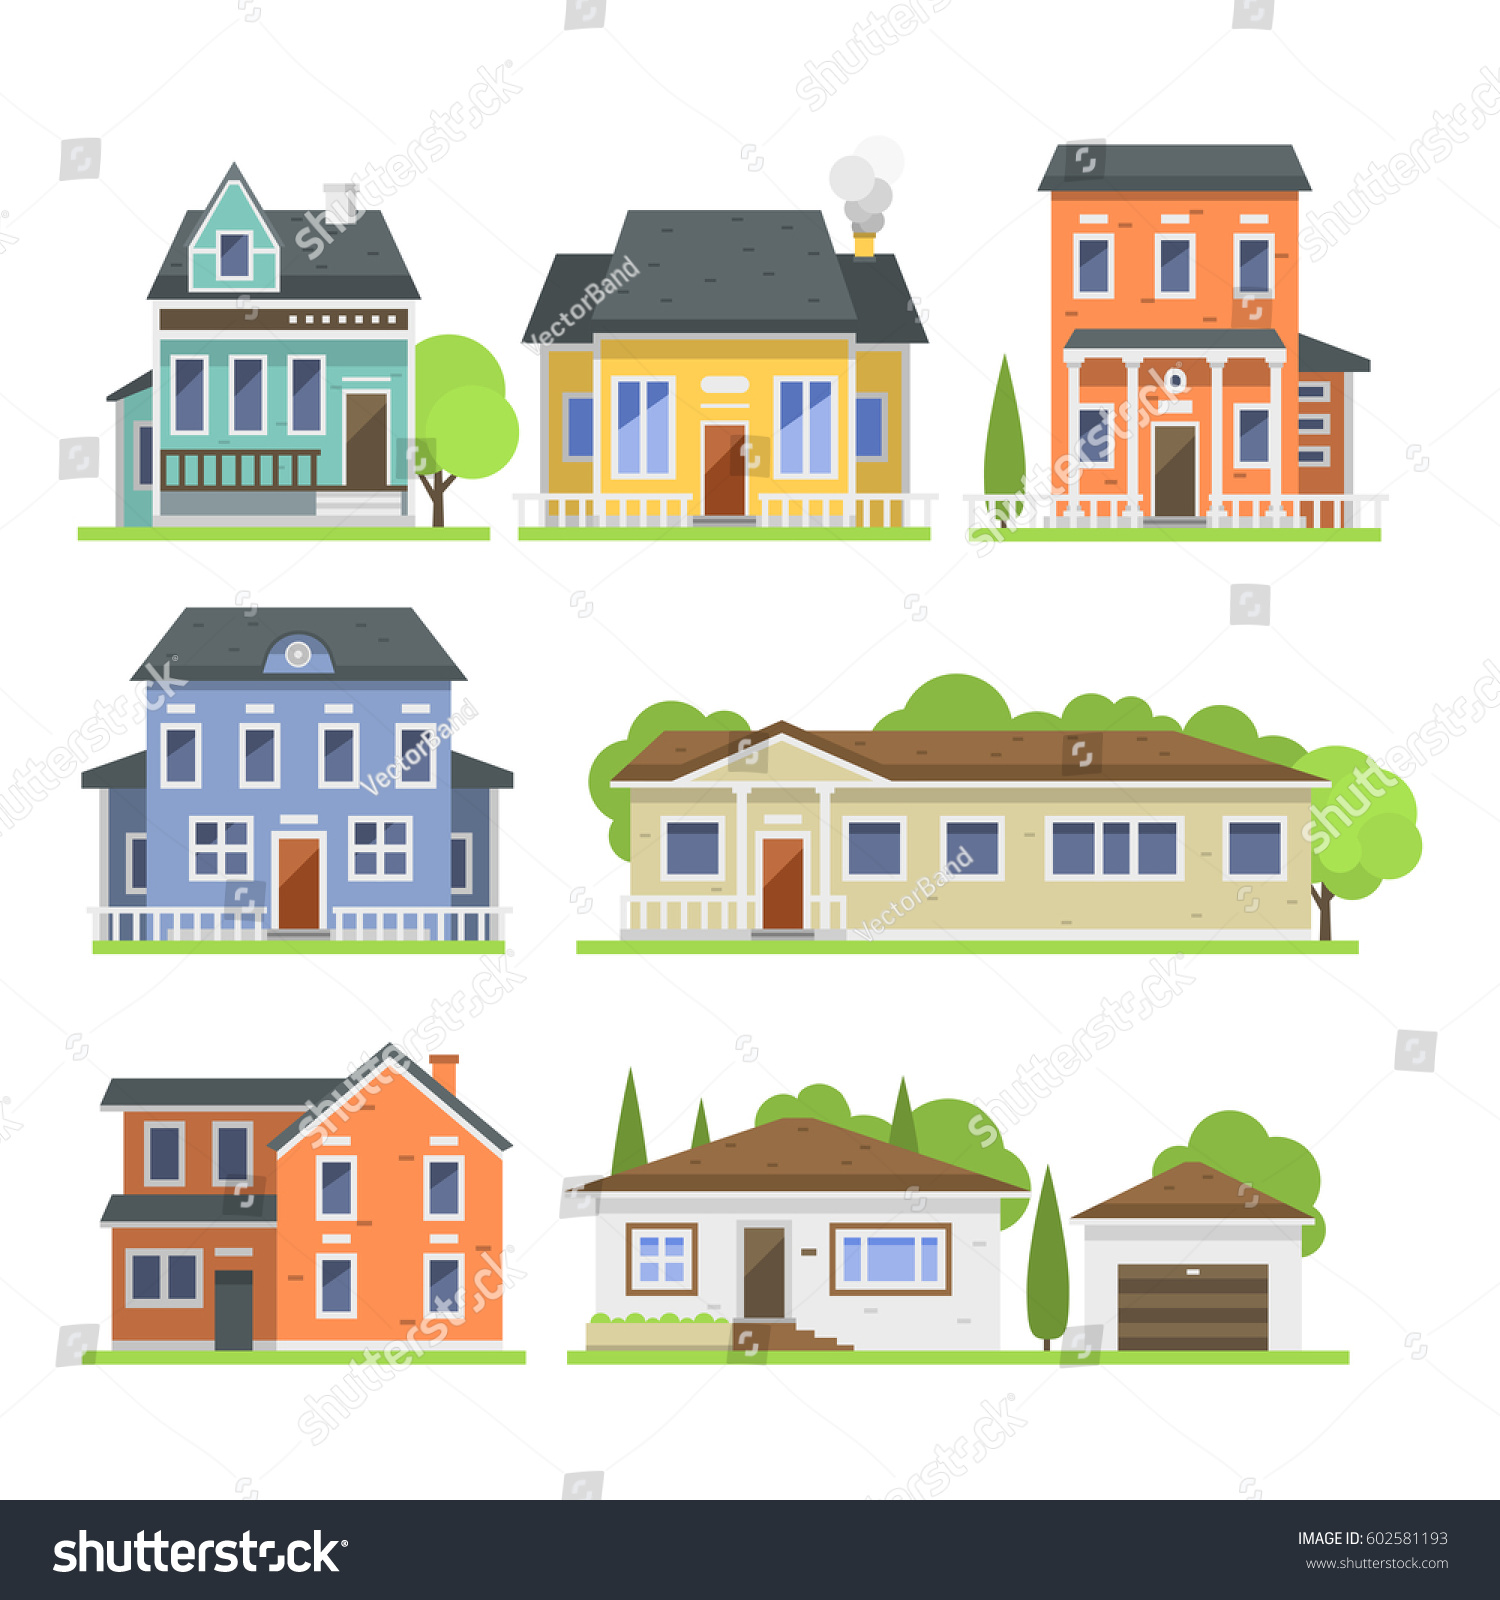 Cute Colorful Flat Style House Village Stock Vector 602581193 ...